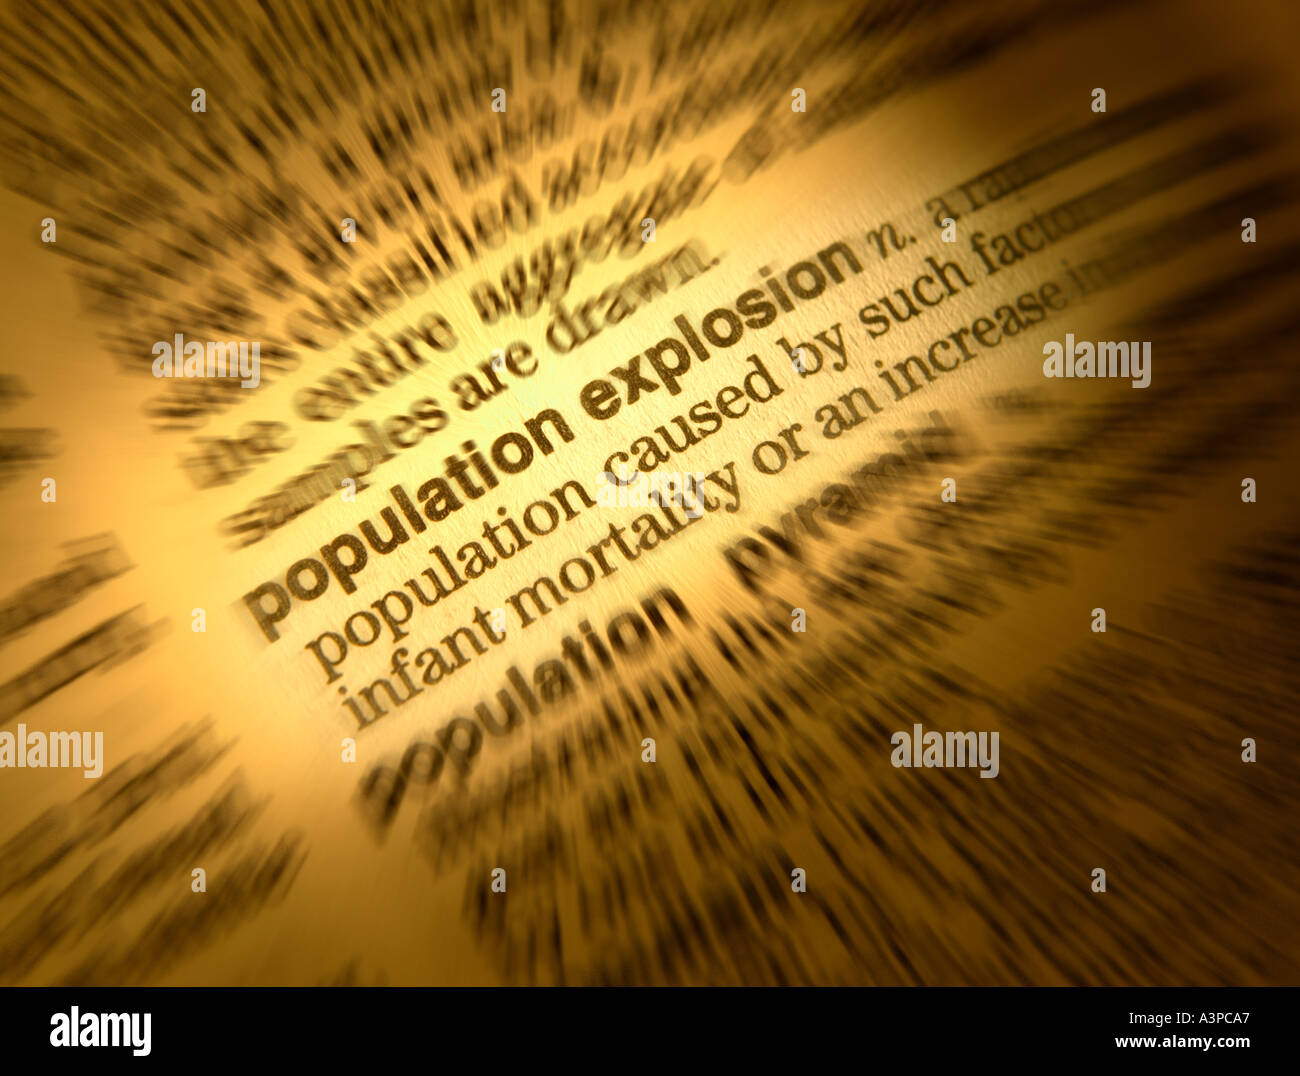 CLOSE UP OF DICTIONARY PAGE SHOWING DEFINITION OF THE WORDS POPULATION  EXPLOSION   Stock Image